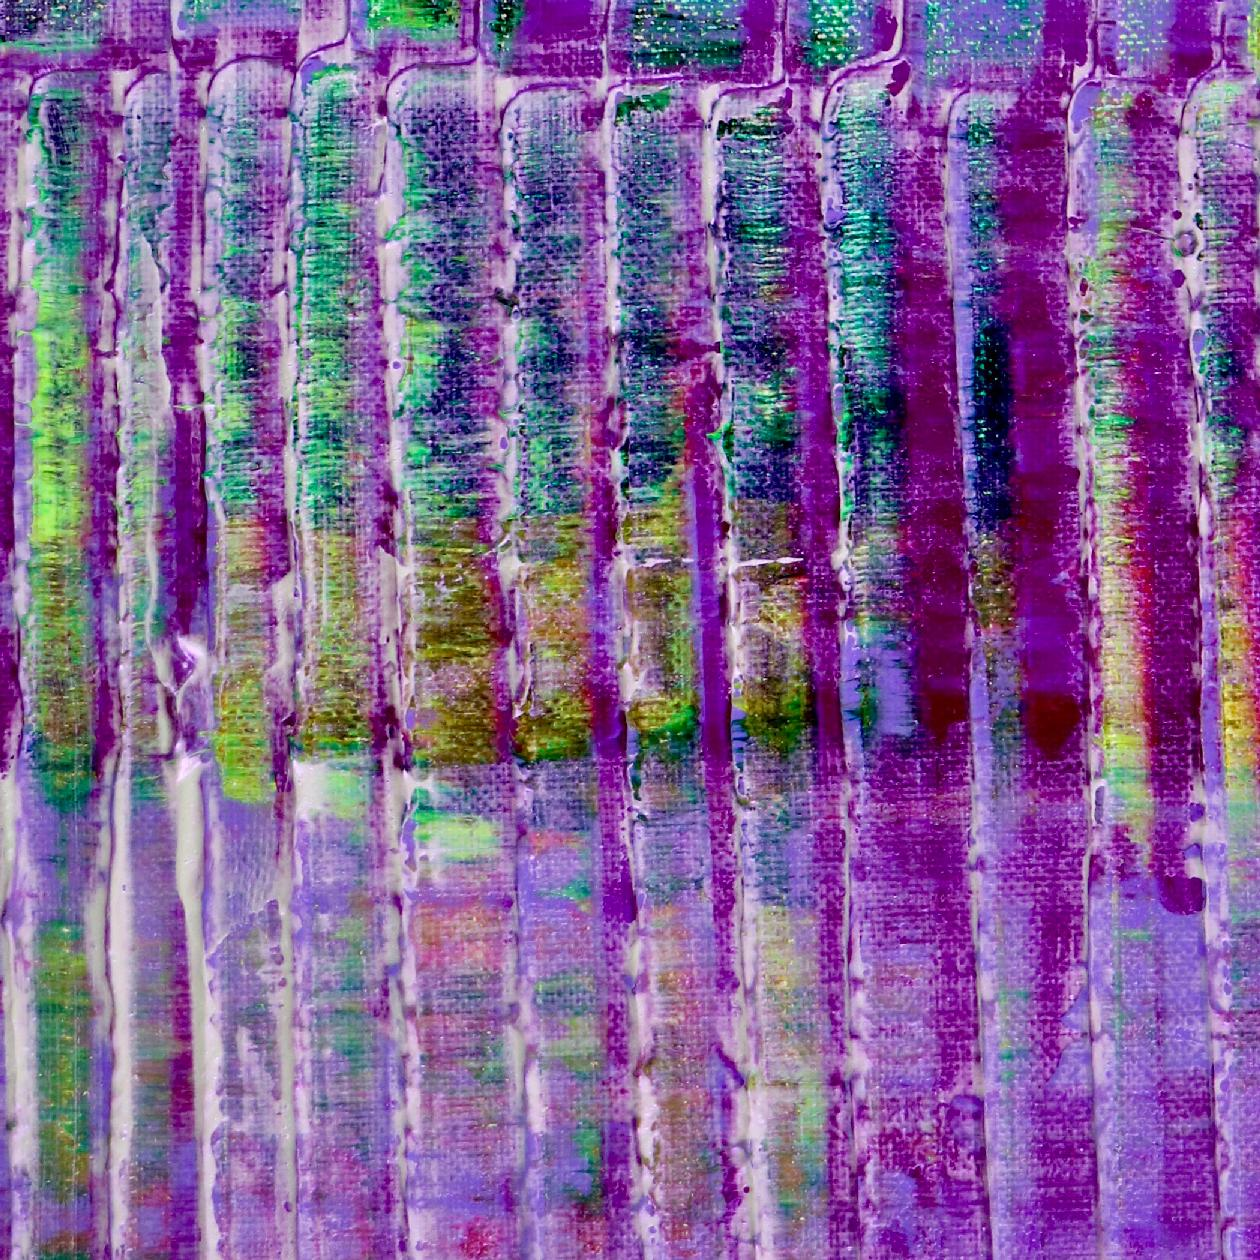 Purple panorama (Green reflections) by Nestor Toro in Los Angeles